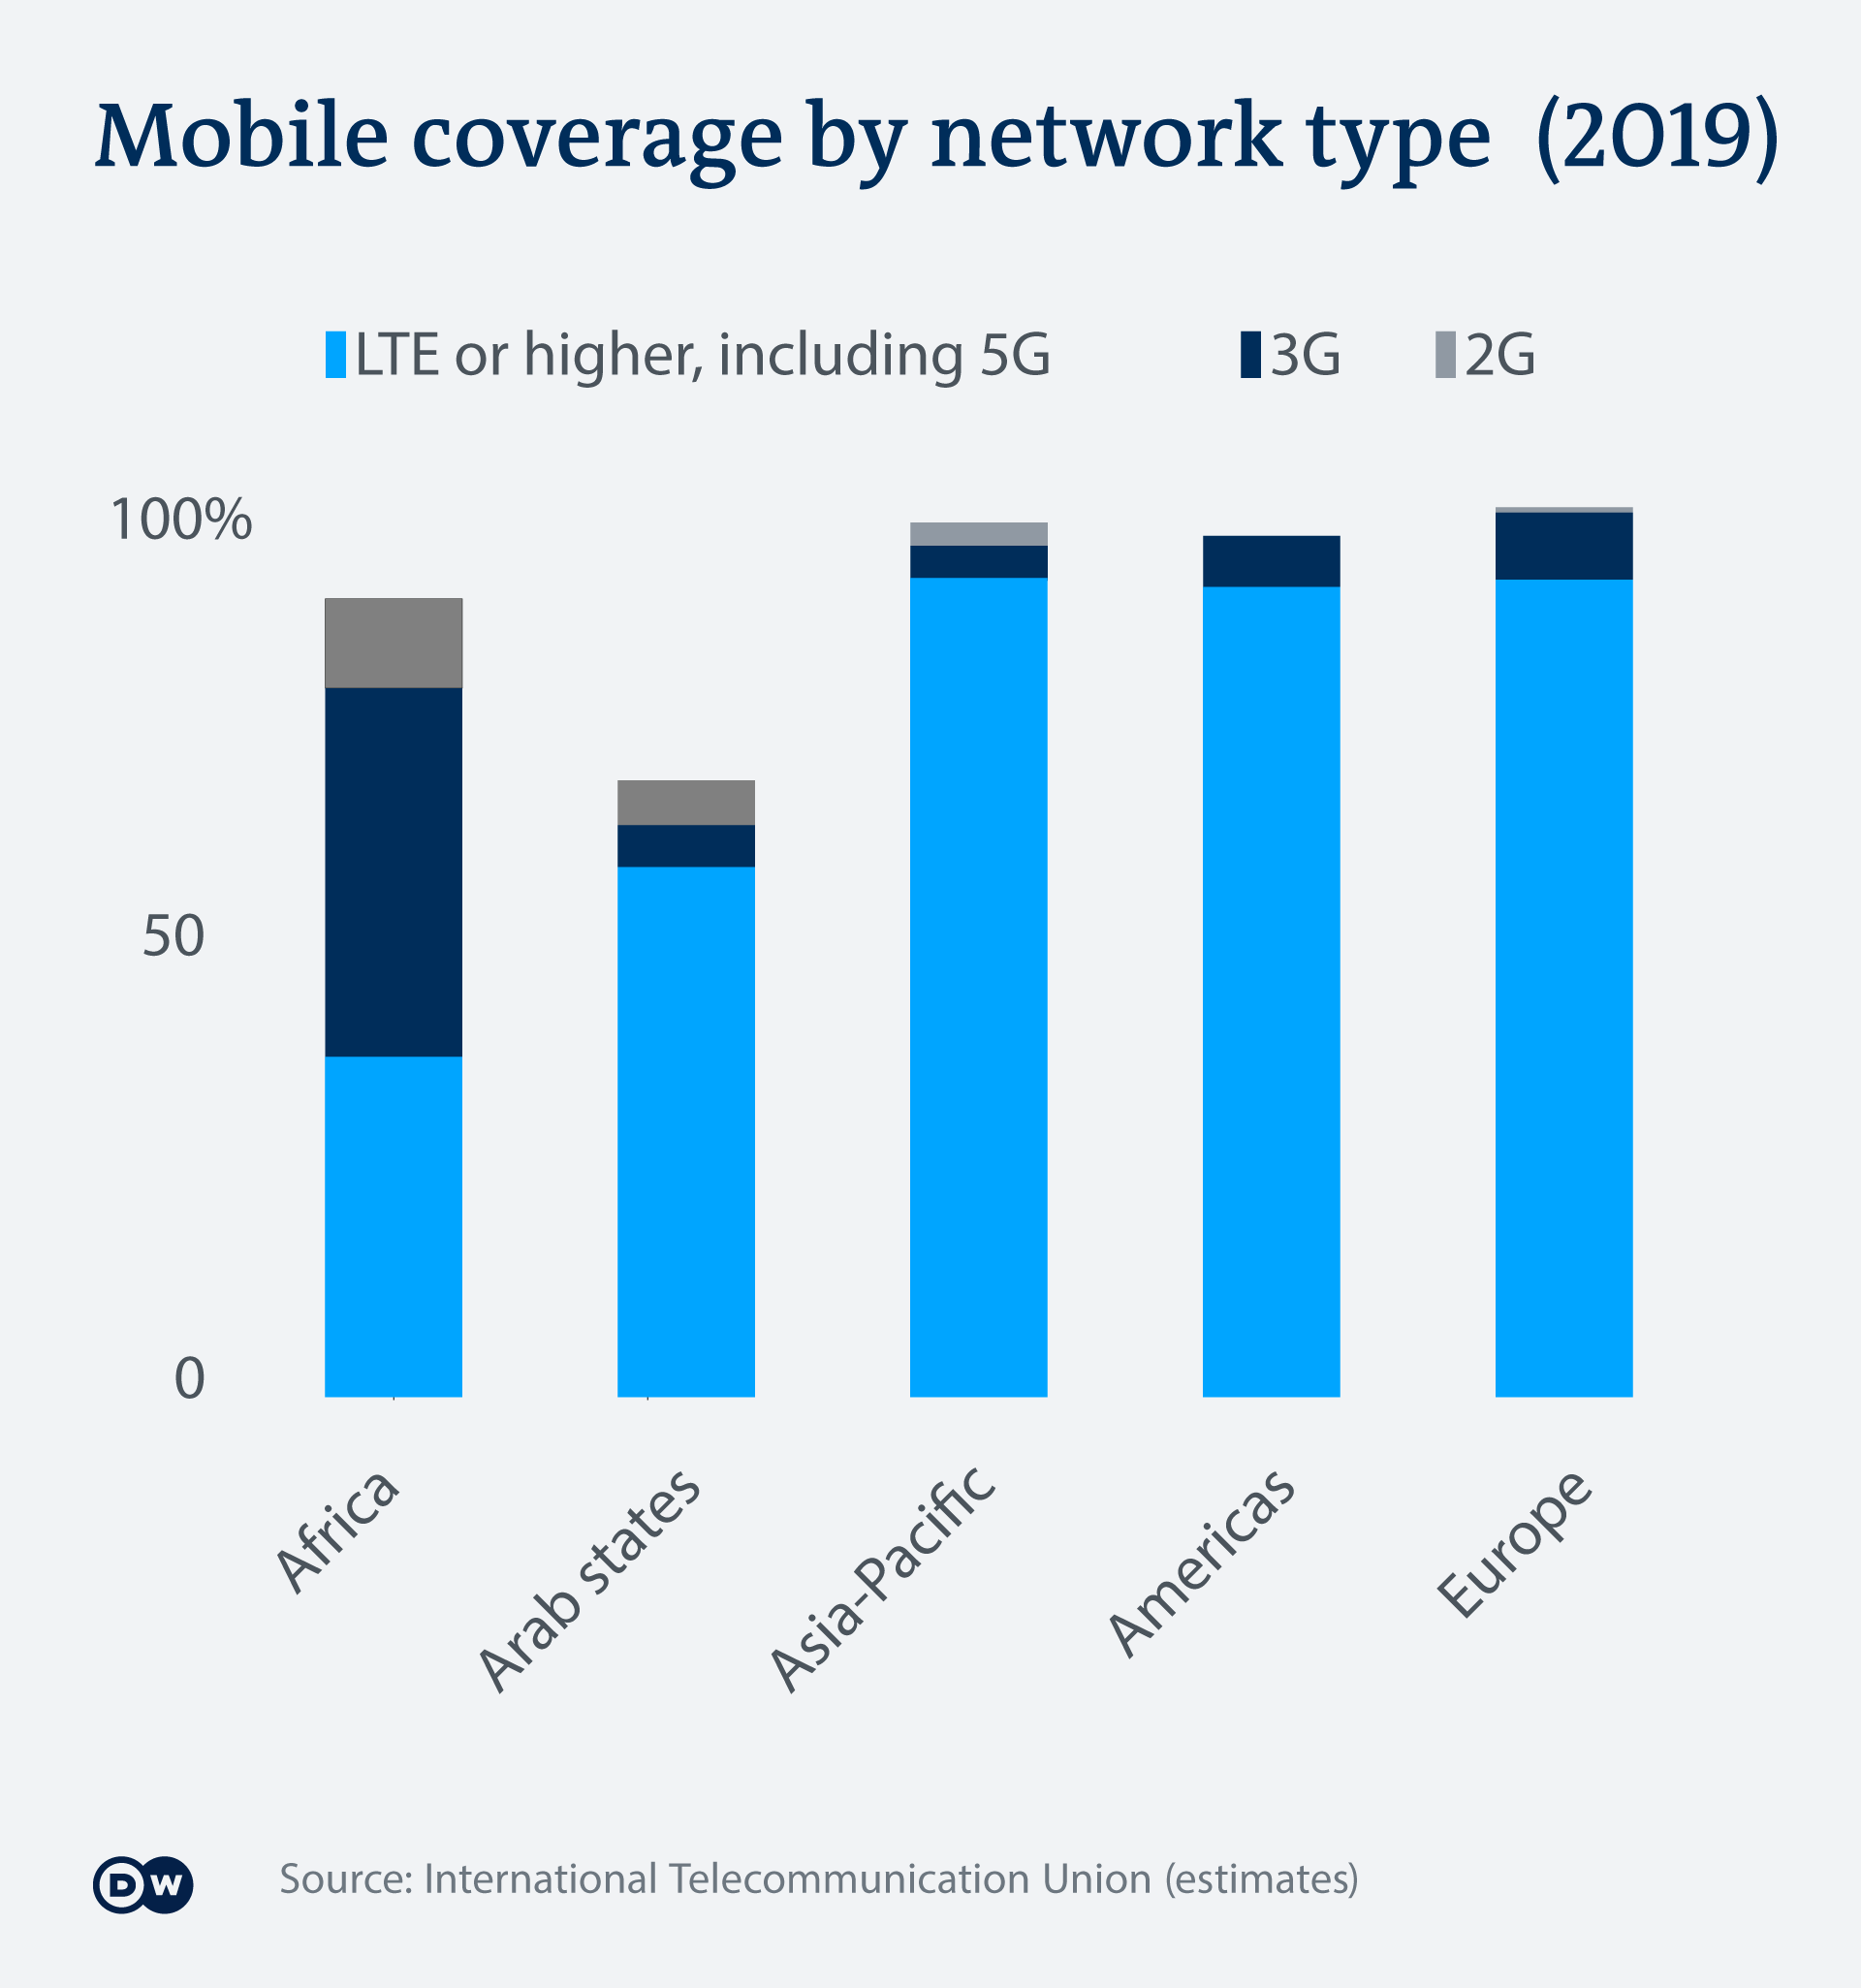 An infographic showing mobile coverage by type of network